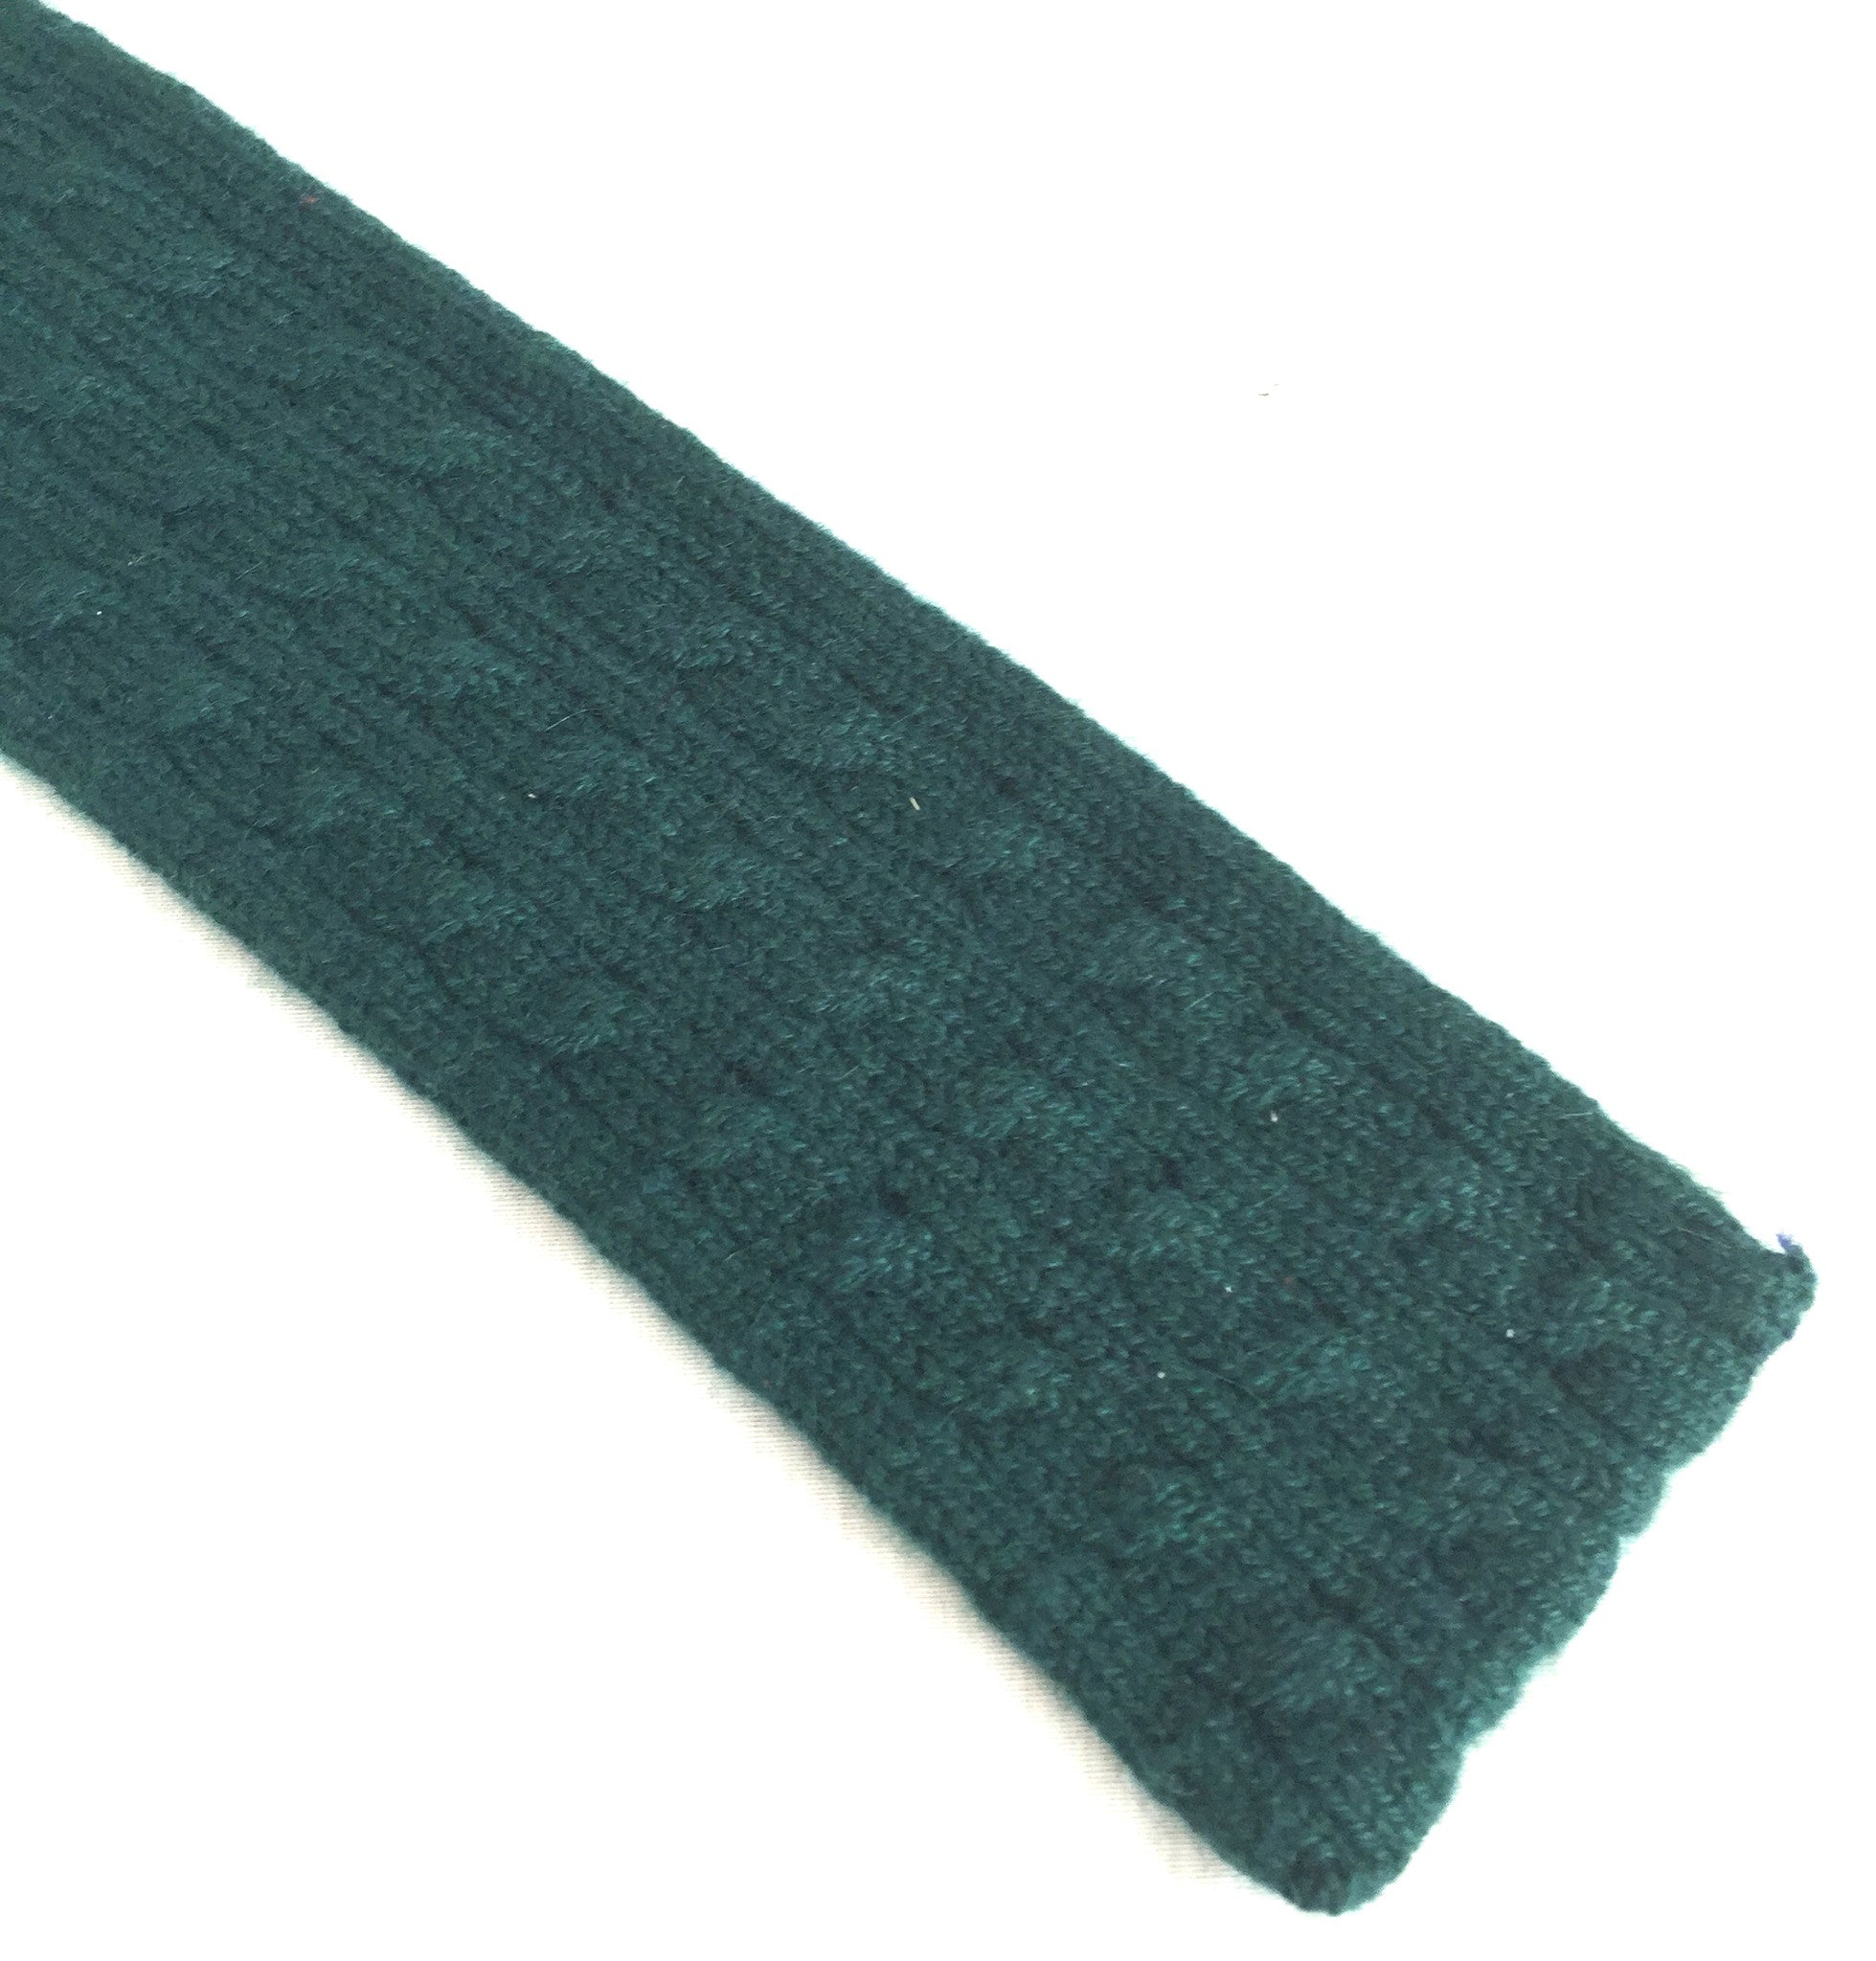 Polo Ralph Lauren - Green Pure Cashmere Knit Tie